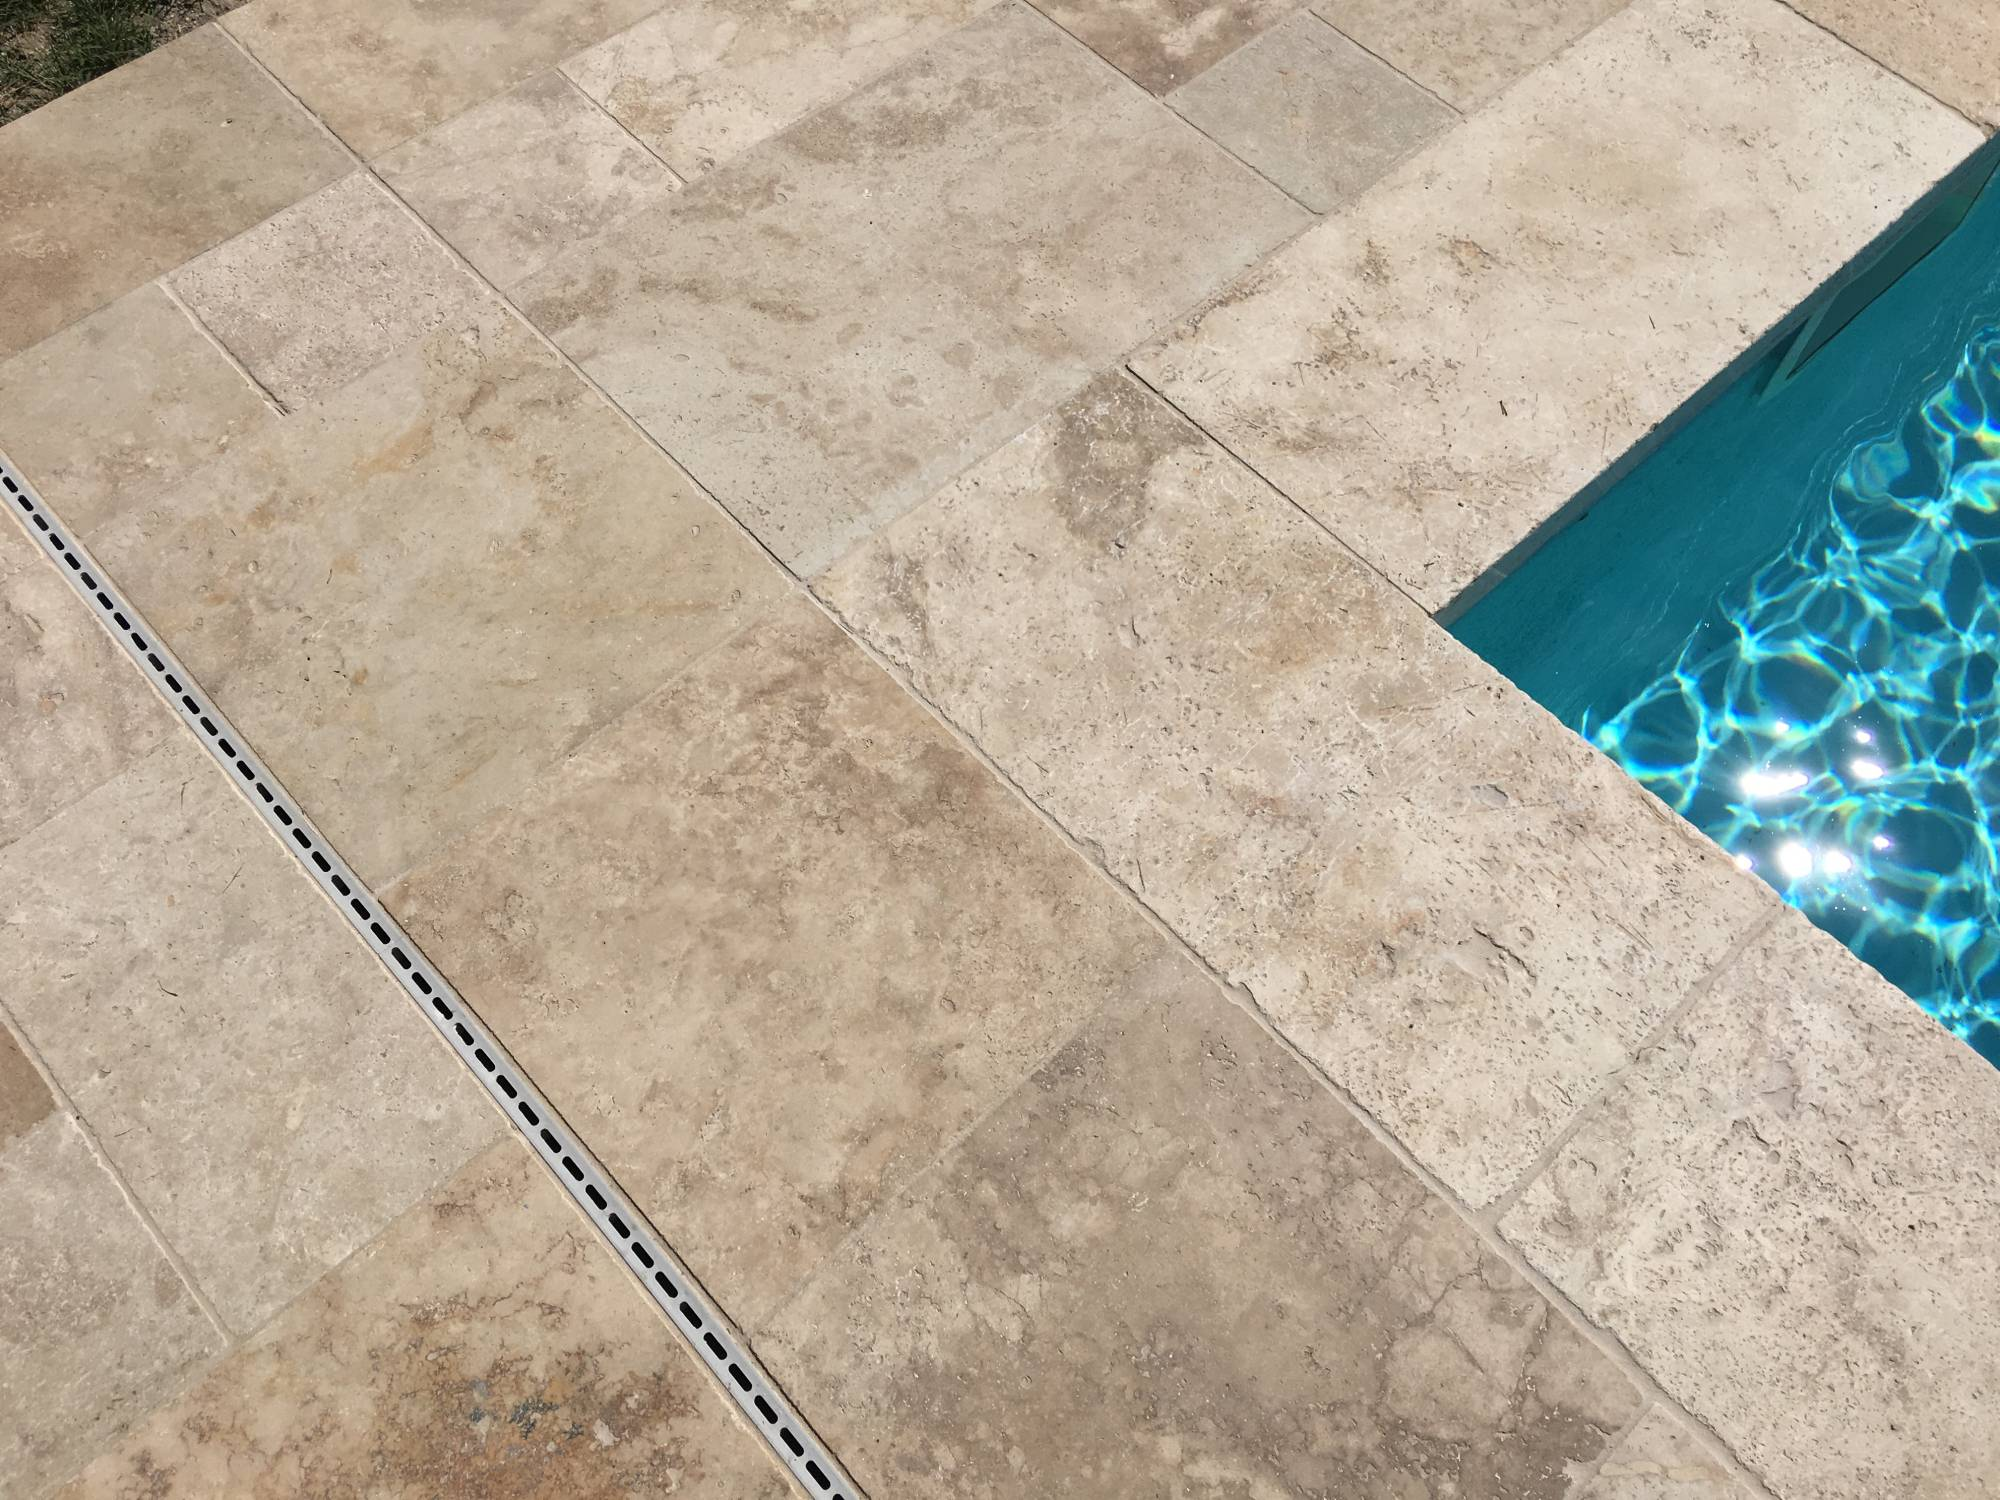 Piscine en travertin carrelage int rieur et ext rieur for Caniveau piscine miroir